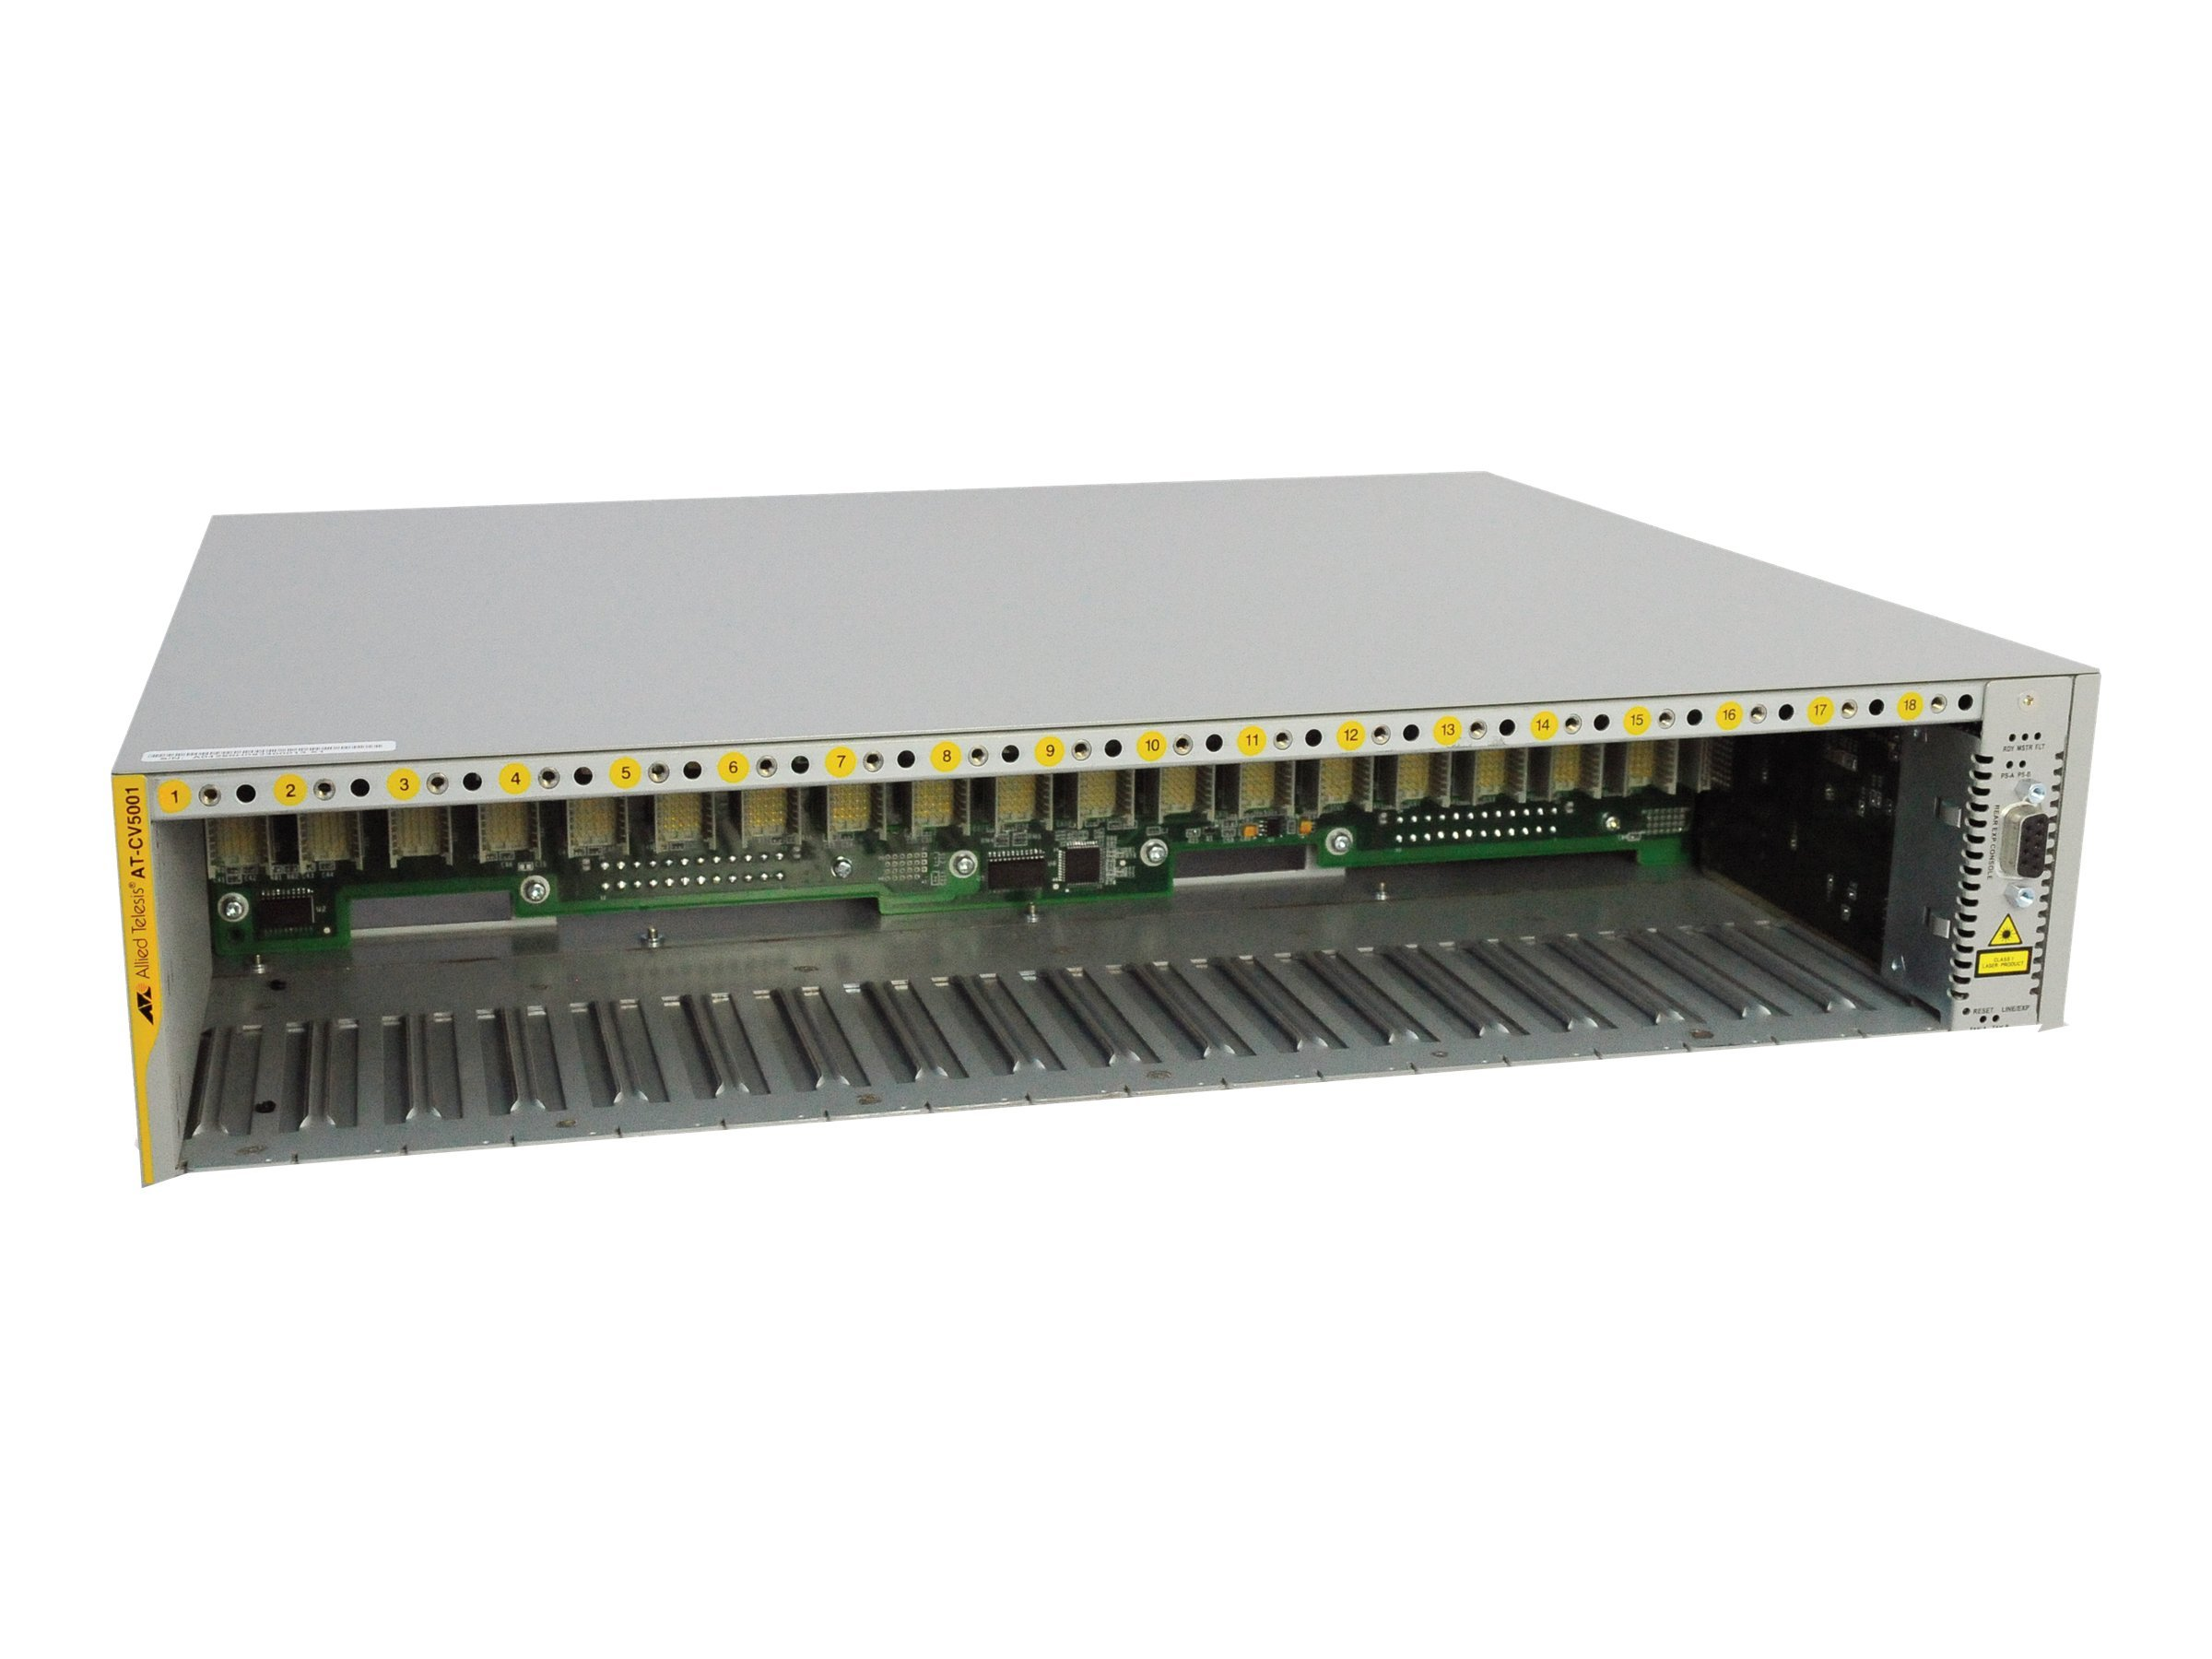 Allied Telesis Converteon AT-CV5001 - Modulare Erweiterungseinheit - 2U - Rack-montierbar